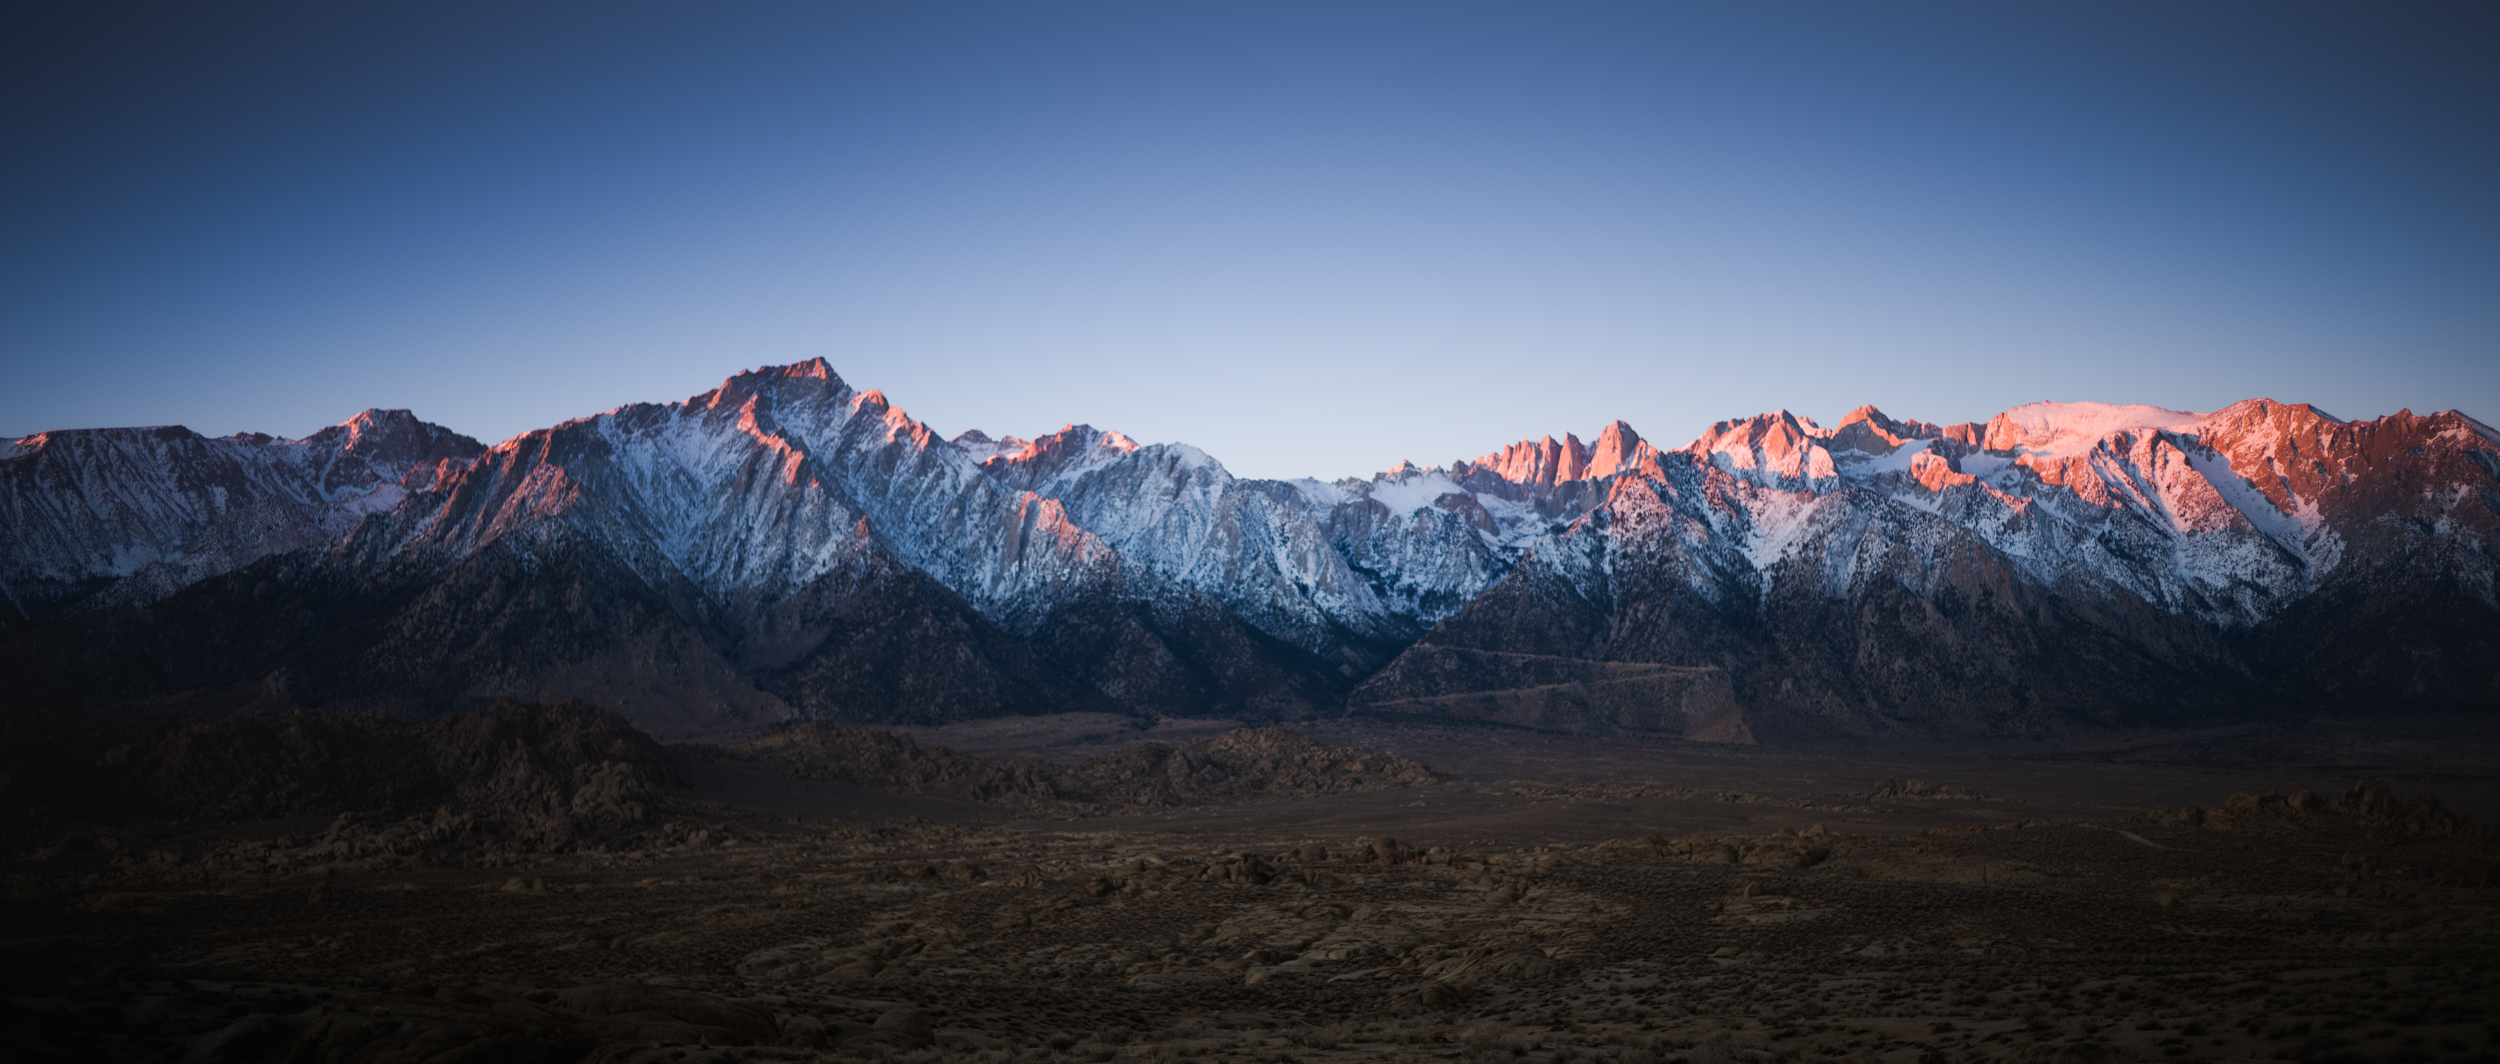 Eastern Sierras at sunrise